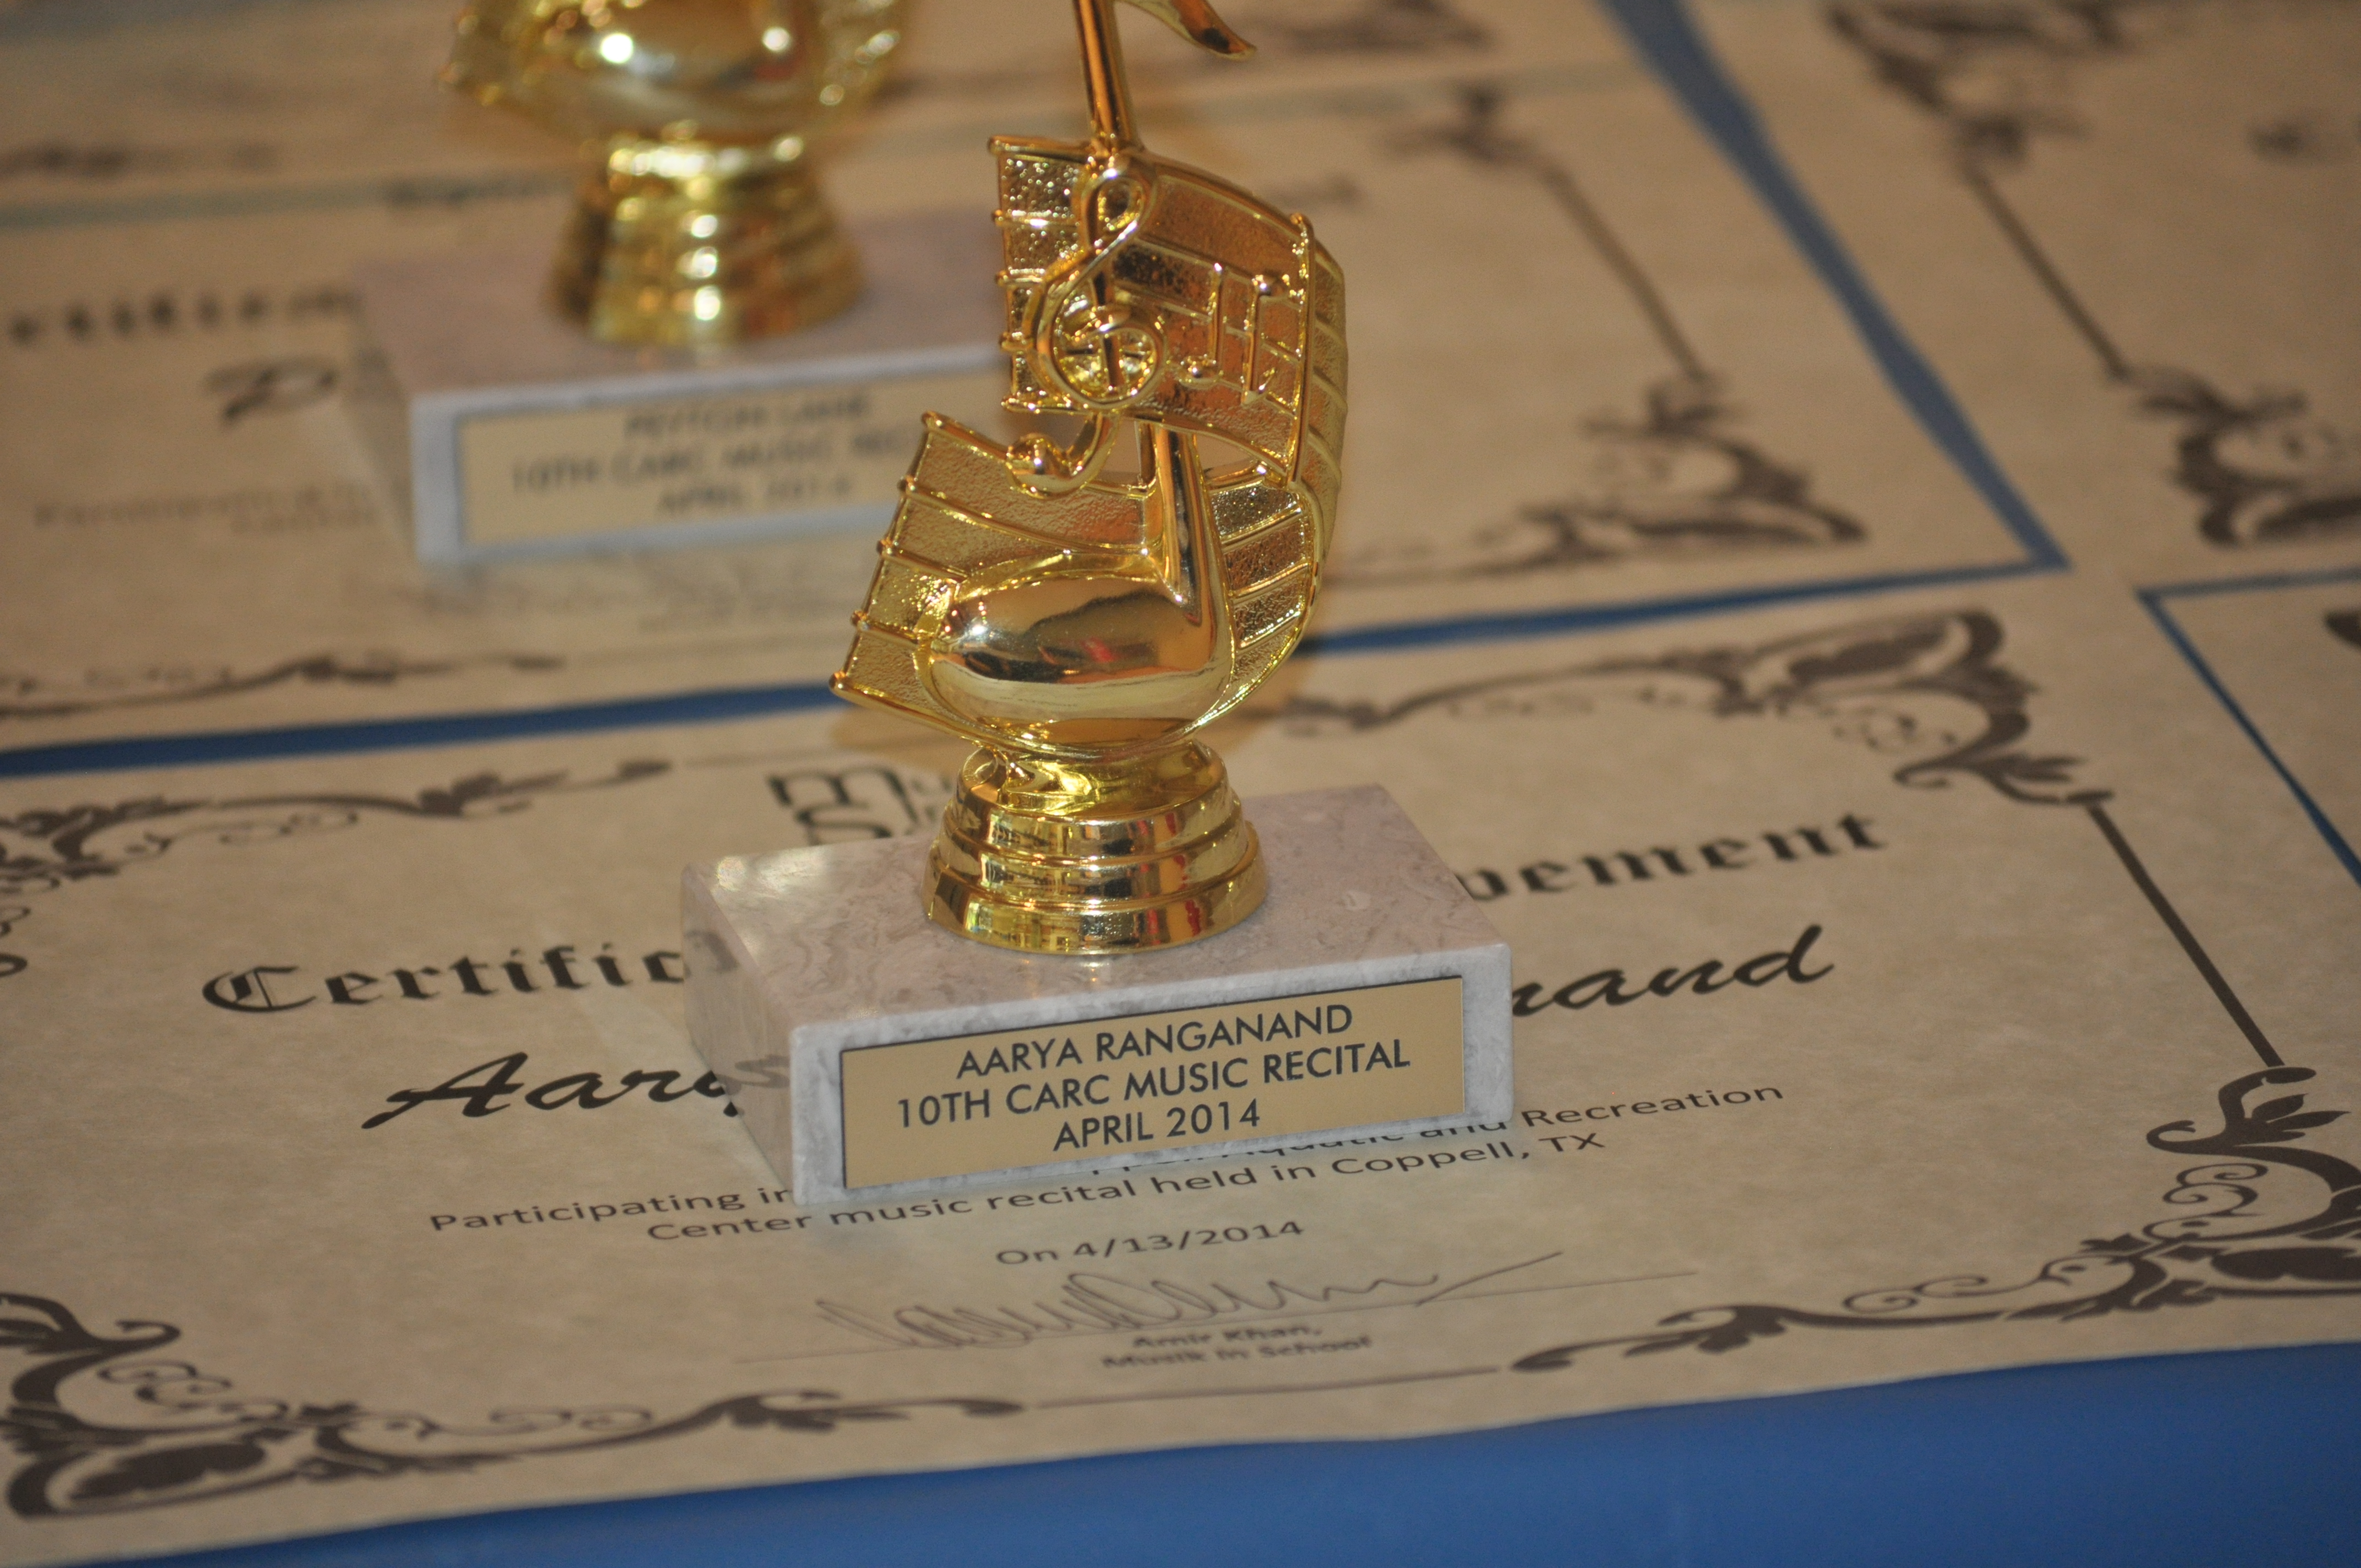 Trophies&Certi_April2014Recital2.JPG